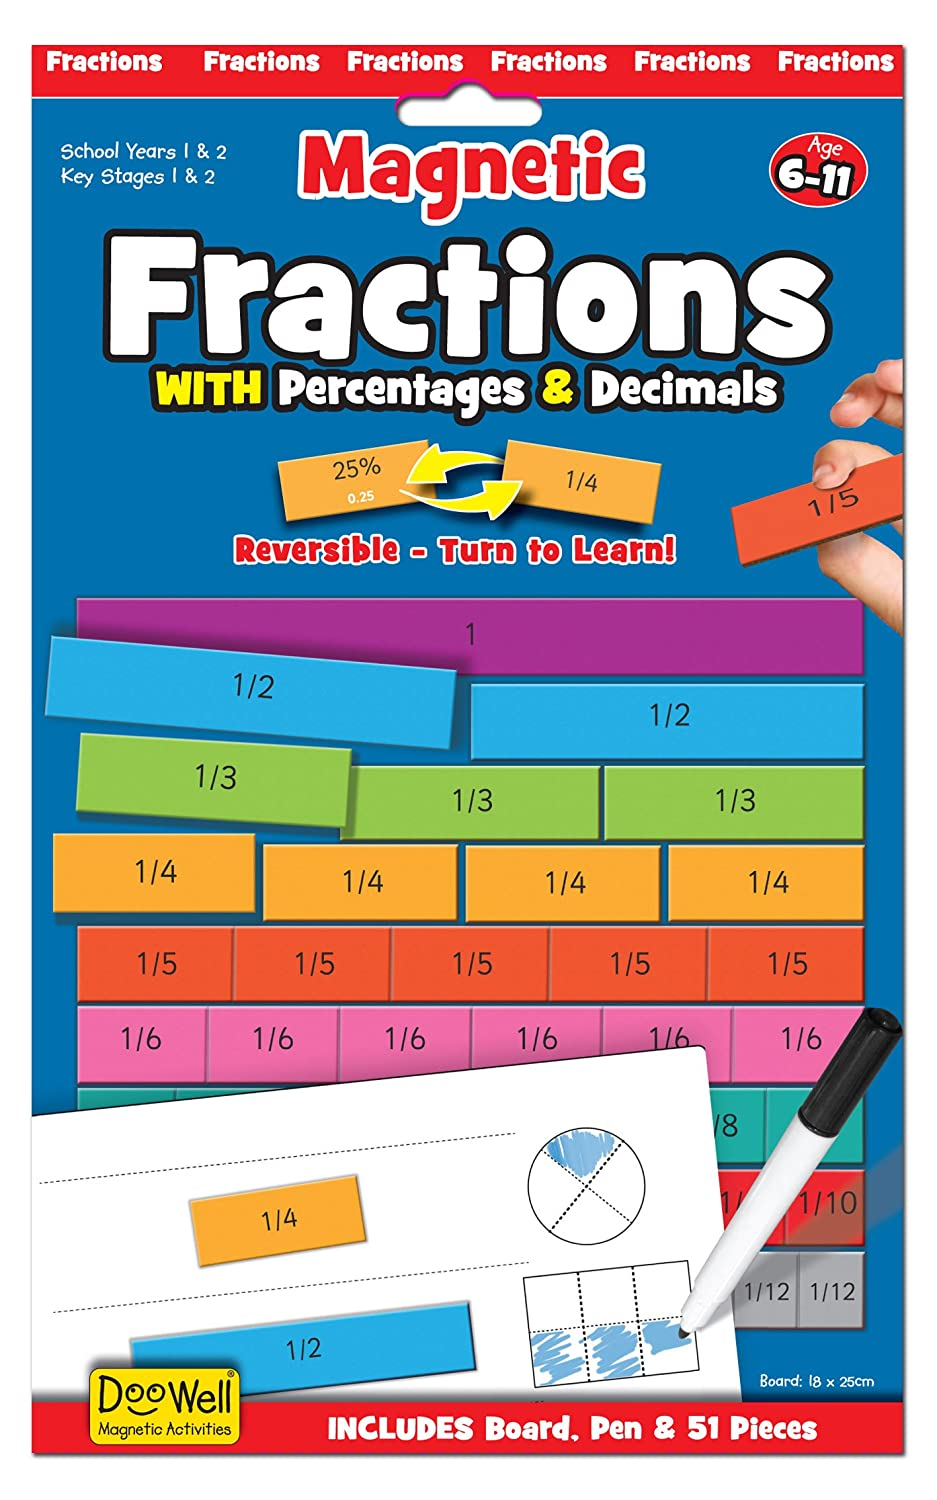 Fractions https://amzn.to/2zO5Ayh